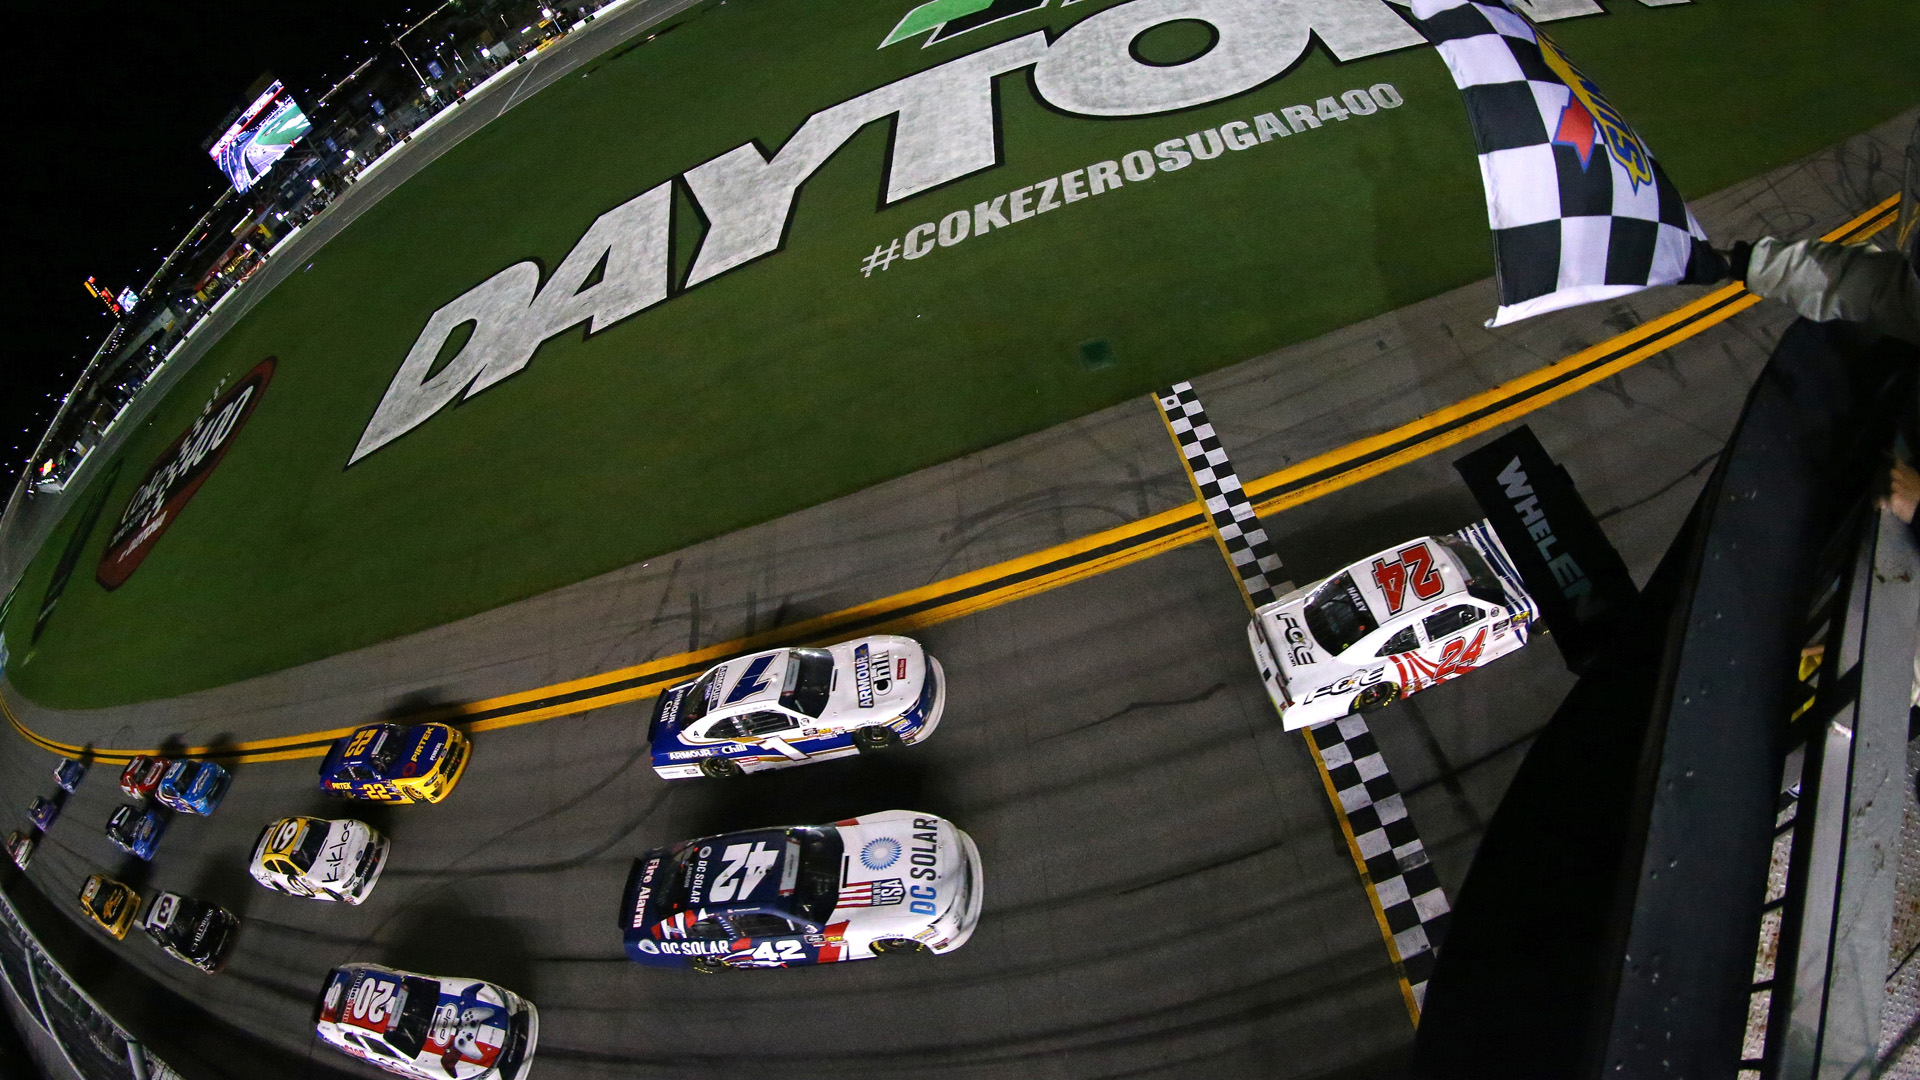 NASCAR at Daytona: Subway Firecracker 250 ends with 2 drivers celebrating victory with only 1 actual winner